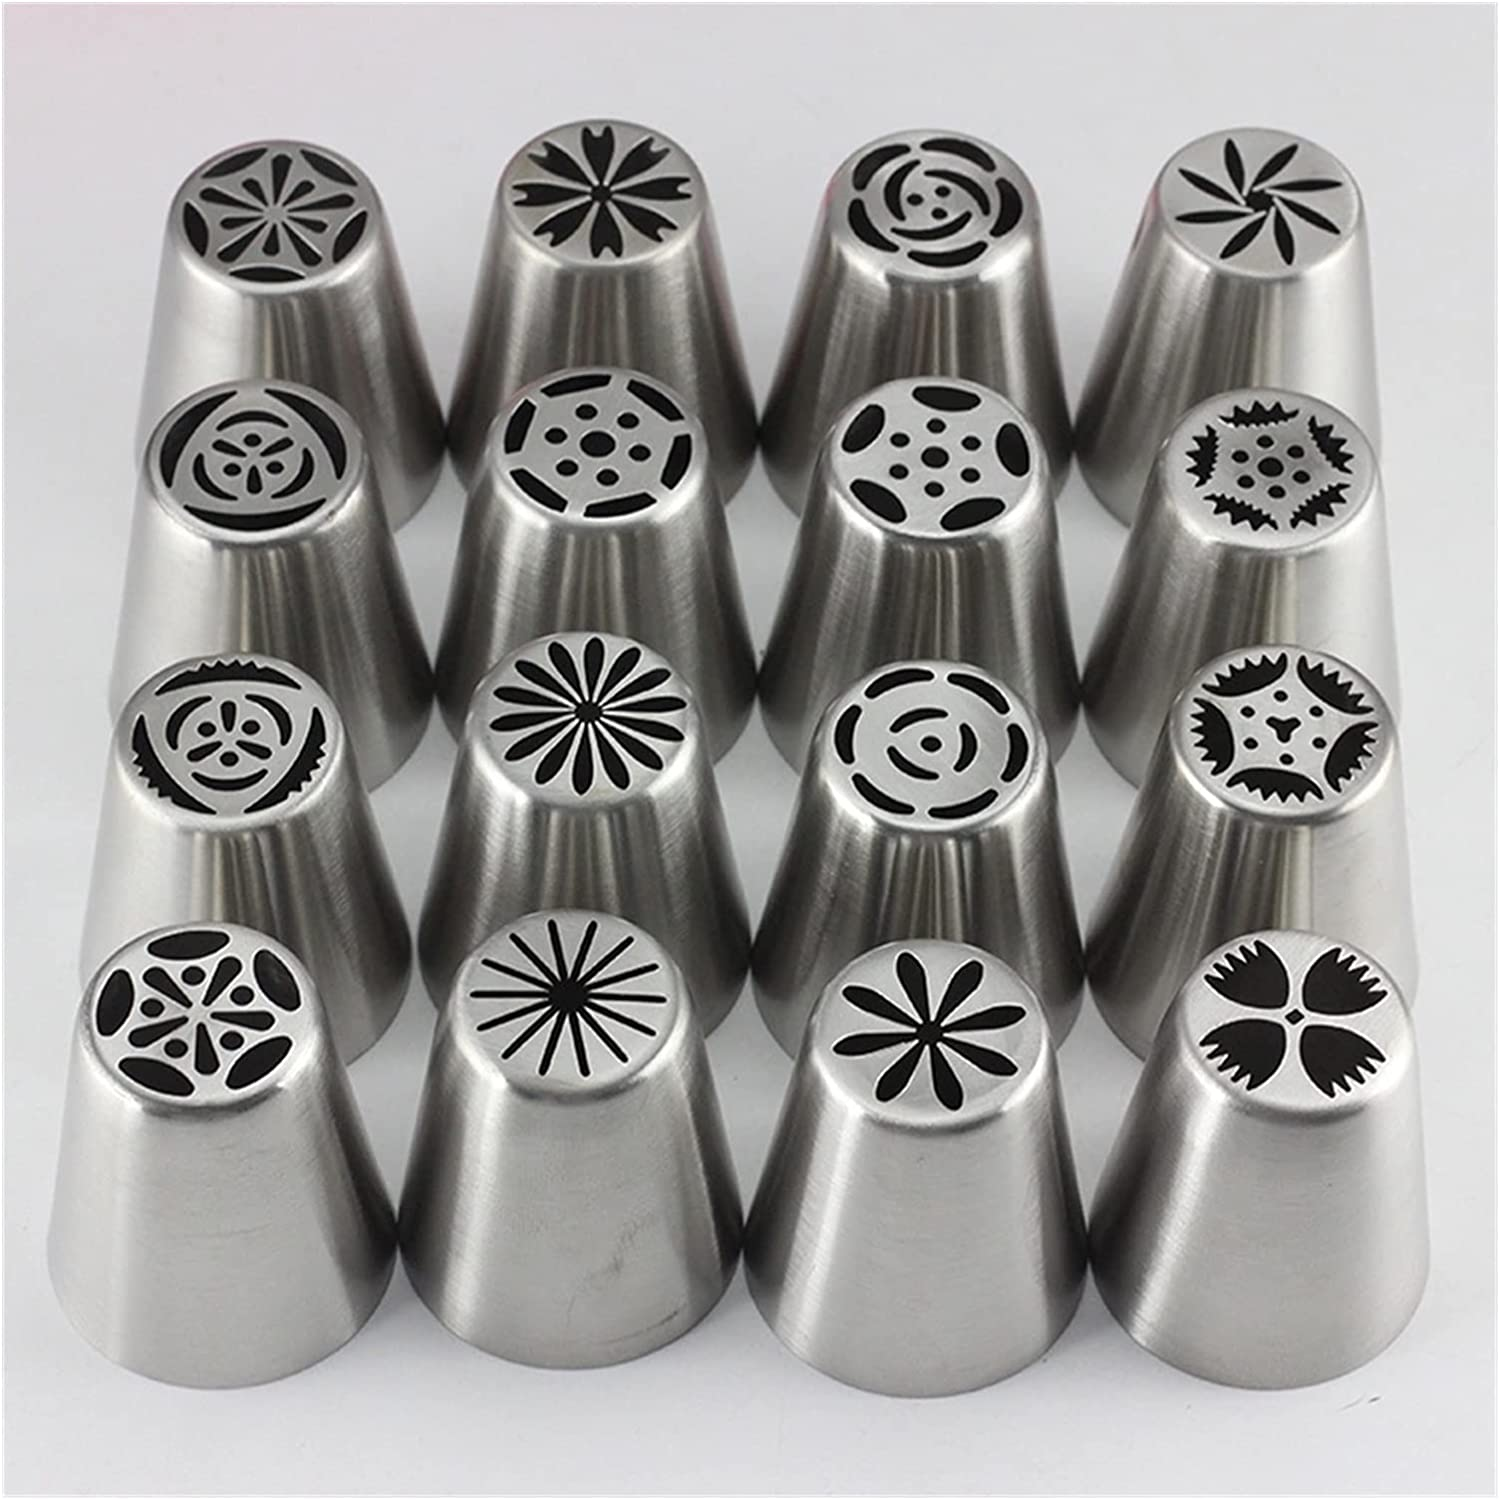 Piping Tips 16Pcs Tulip Icing Tip Virginia Beach Mall Cake Decoration Cheap mail order sales Nozzles